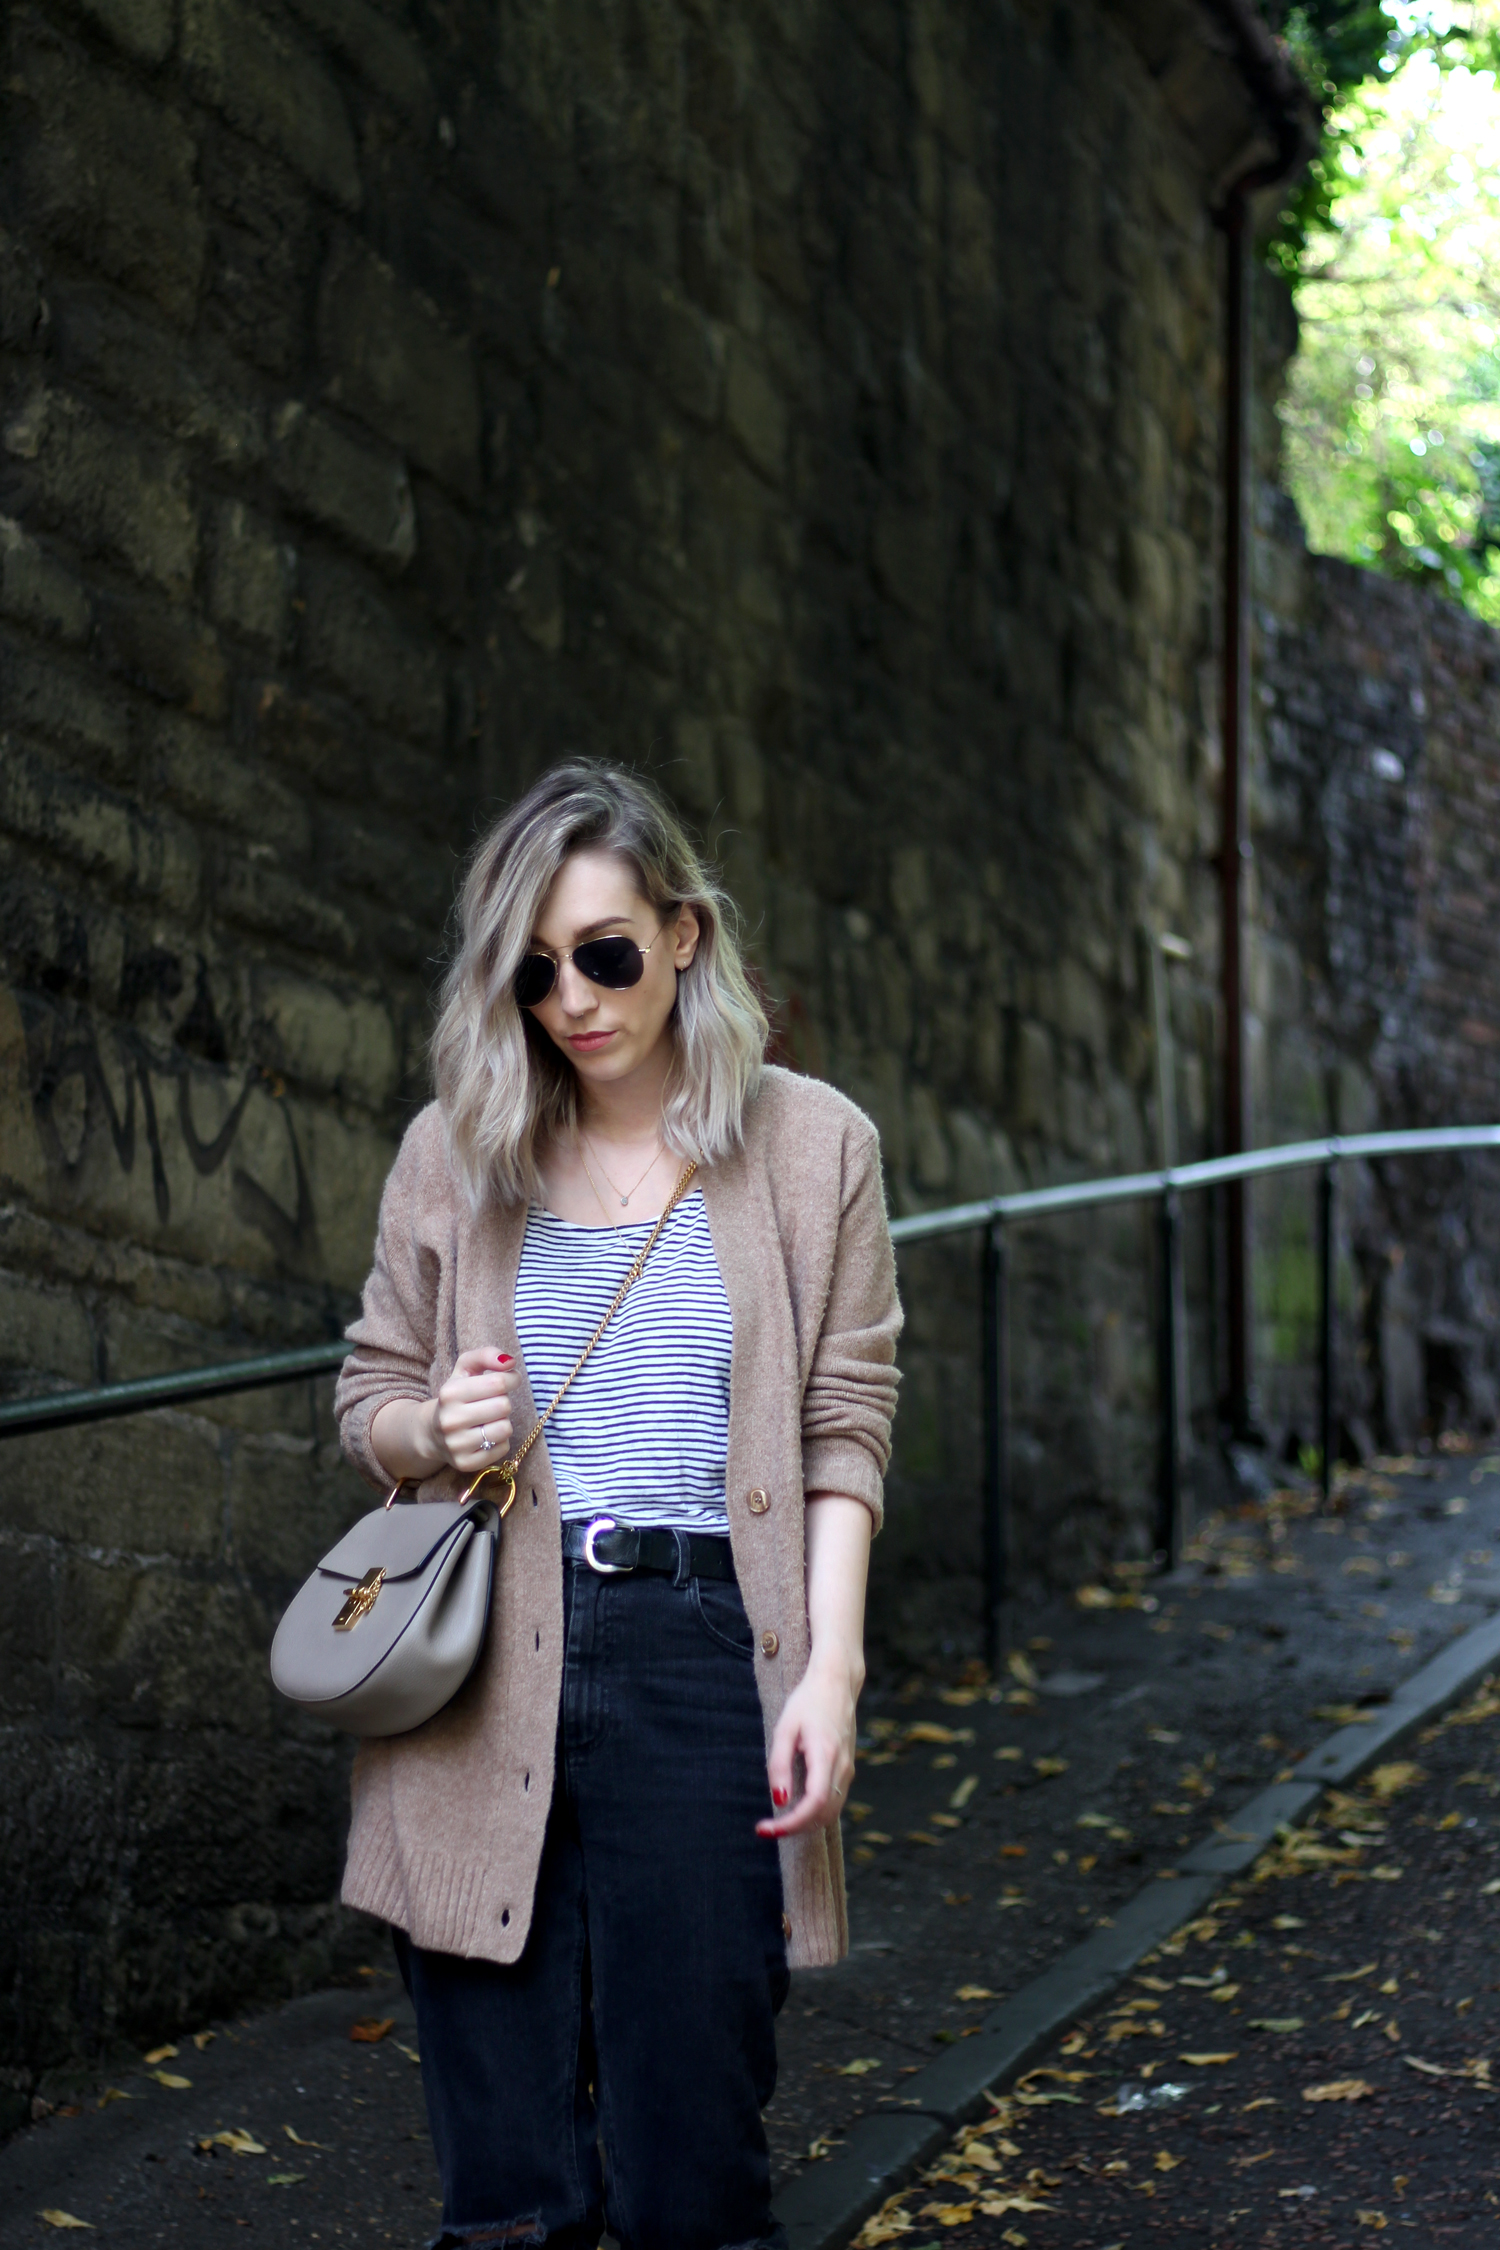 sunglasses-camel-cardigan-asos-ripped-boyfriend-jeans-1